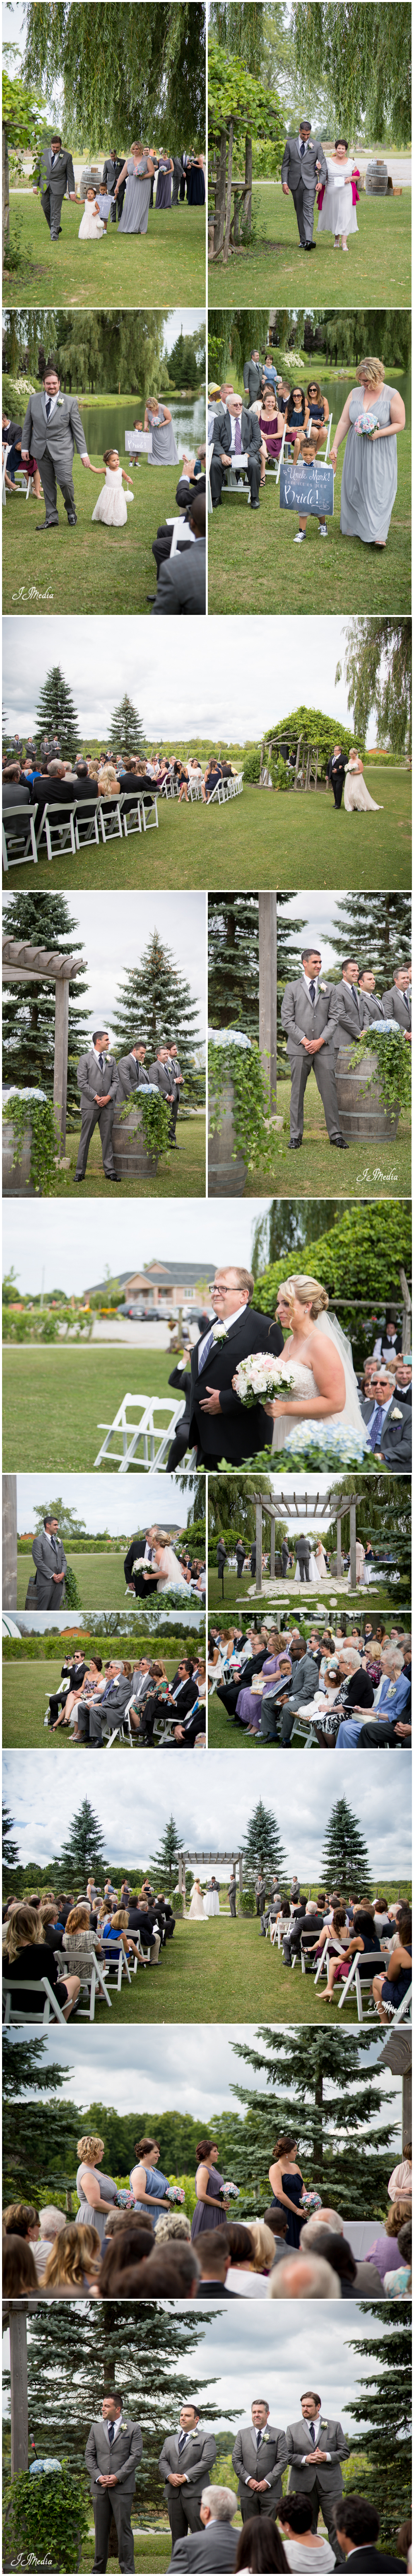 Willow_Springs_Winery_Wedding_JJMedia-4